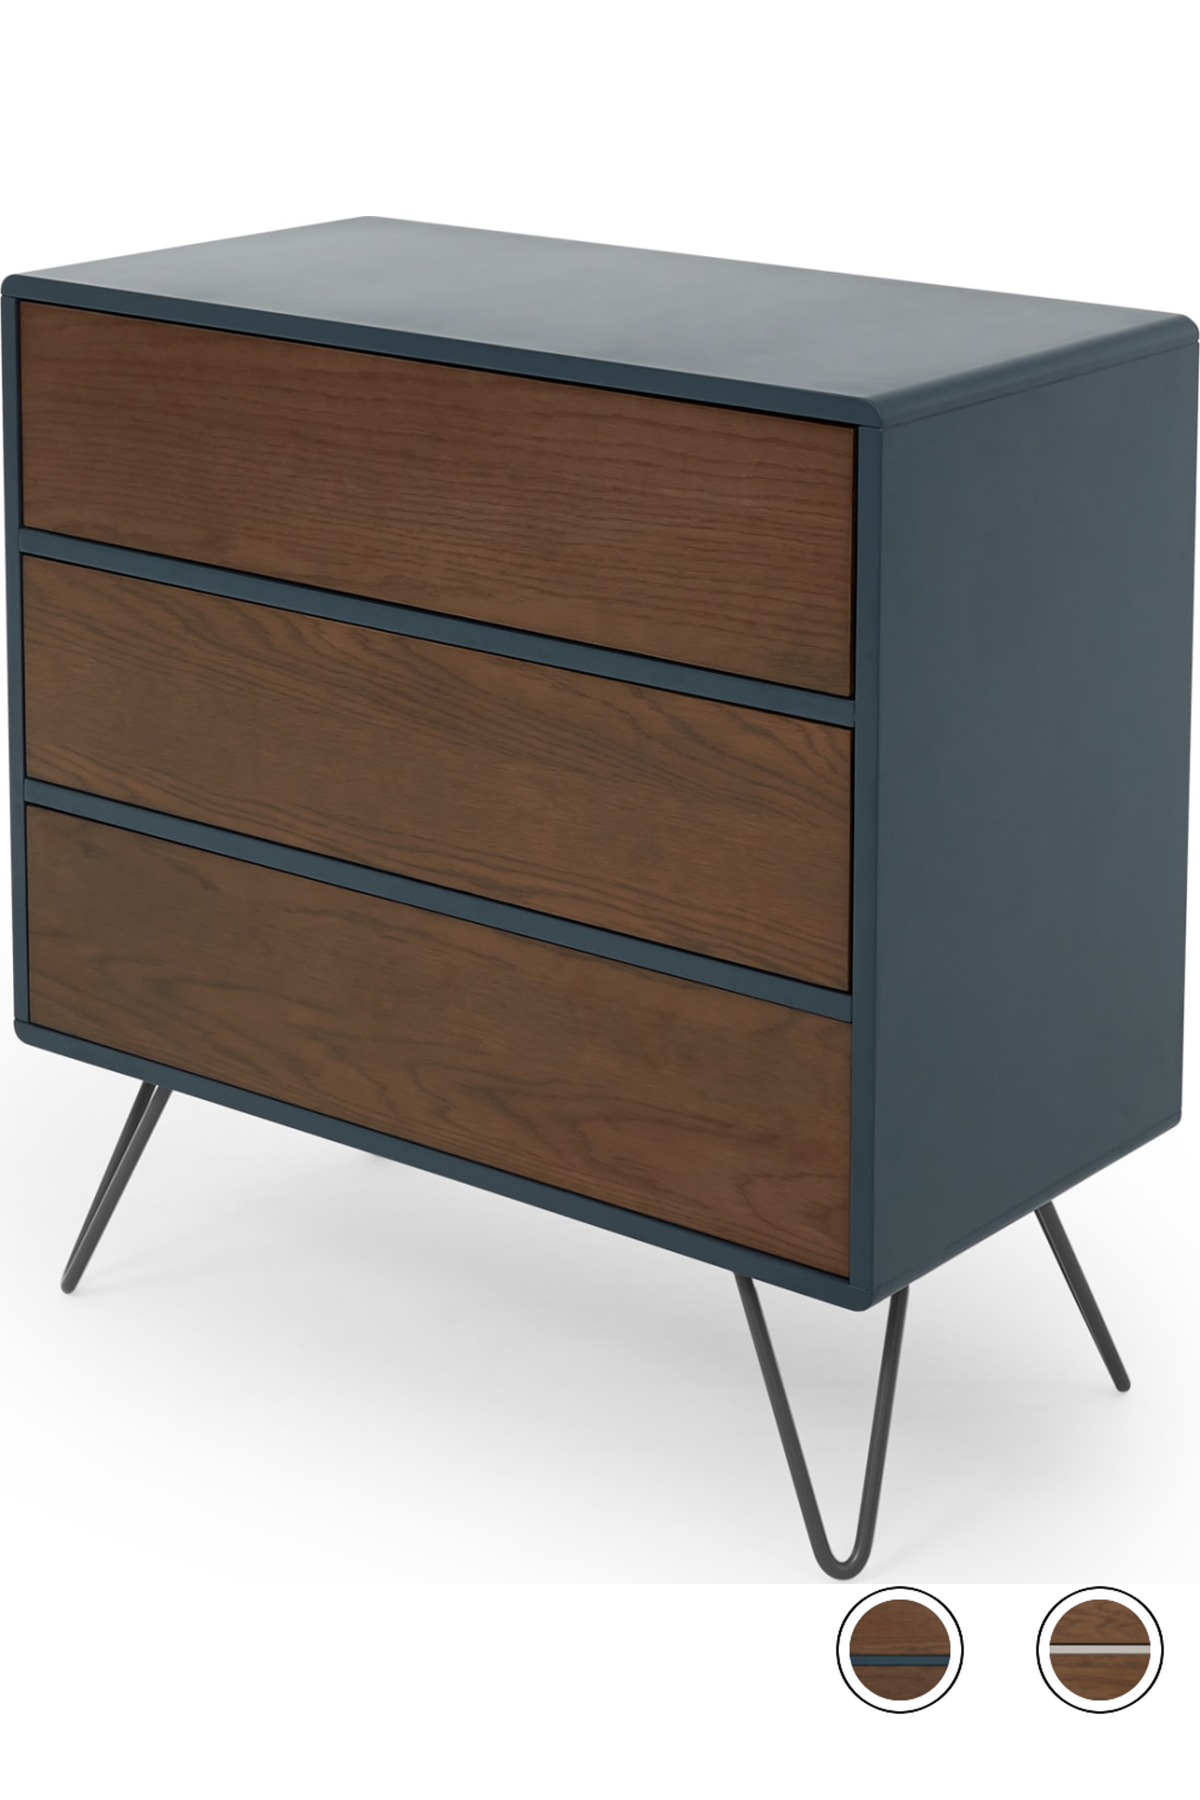 Ukan Chest Of Drawers Blue And Dark Stain Oak Bedroom Chest Of